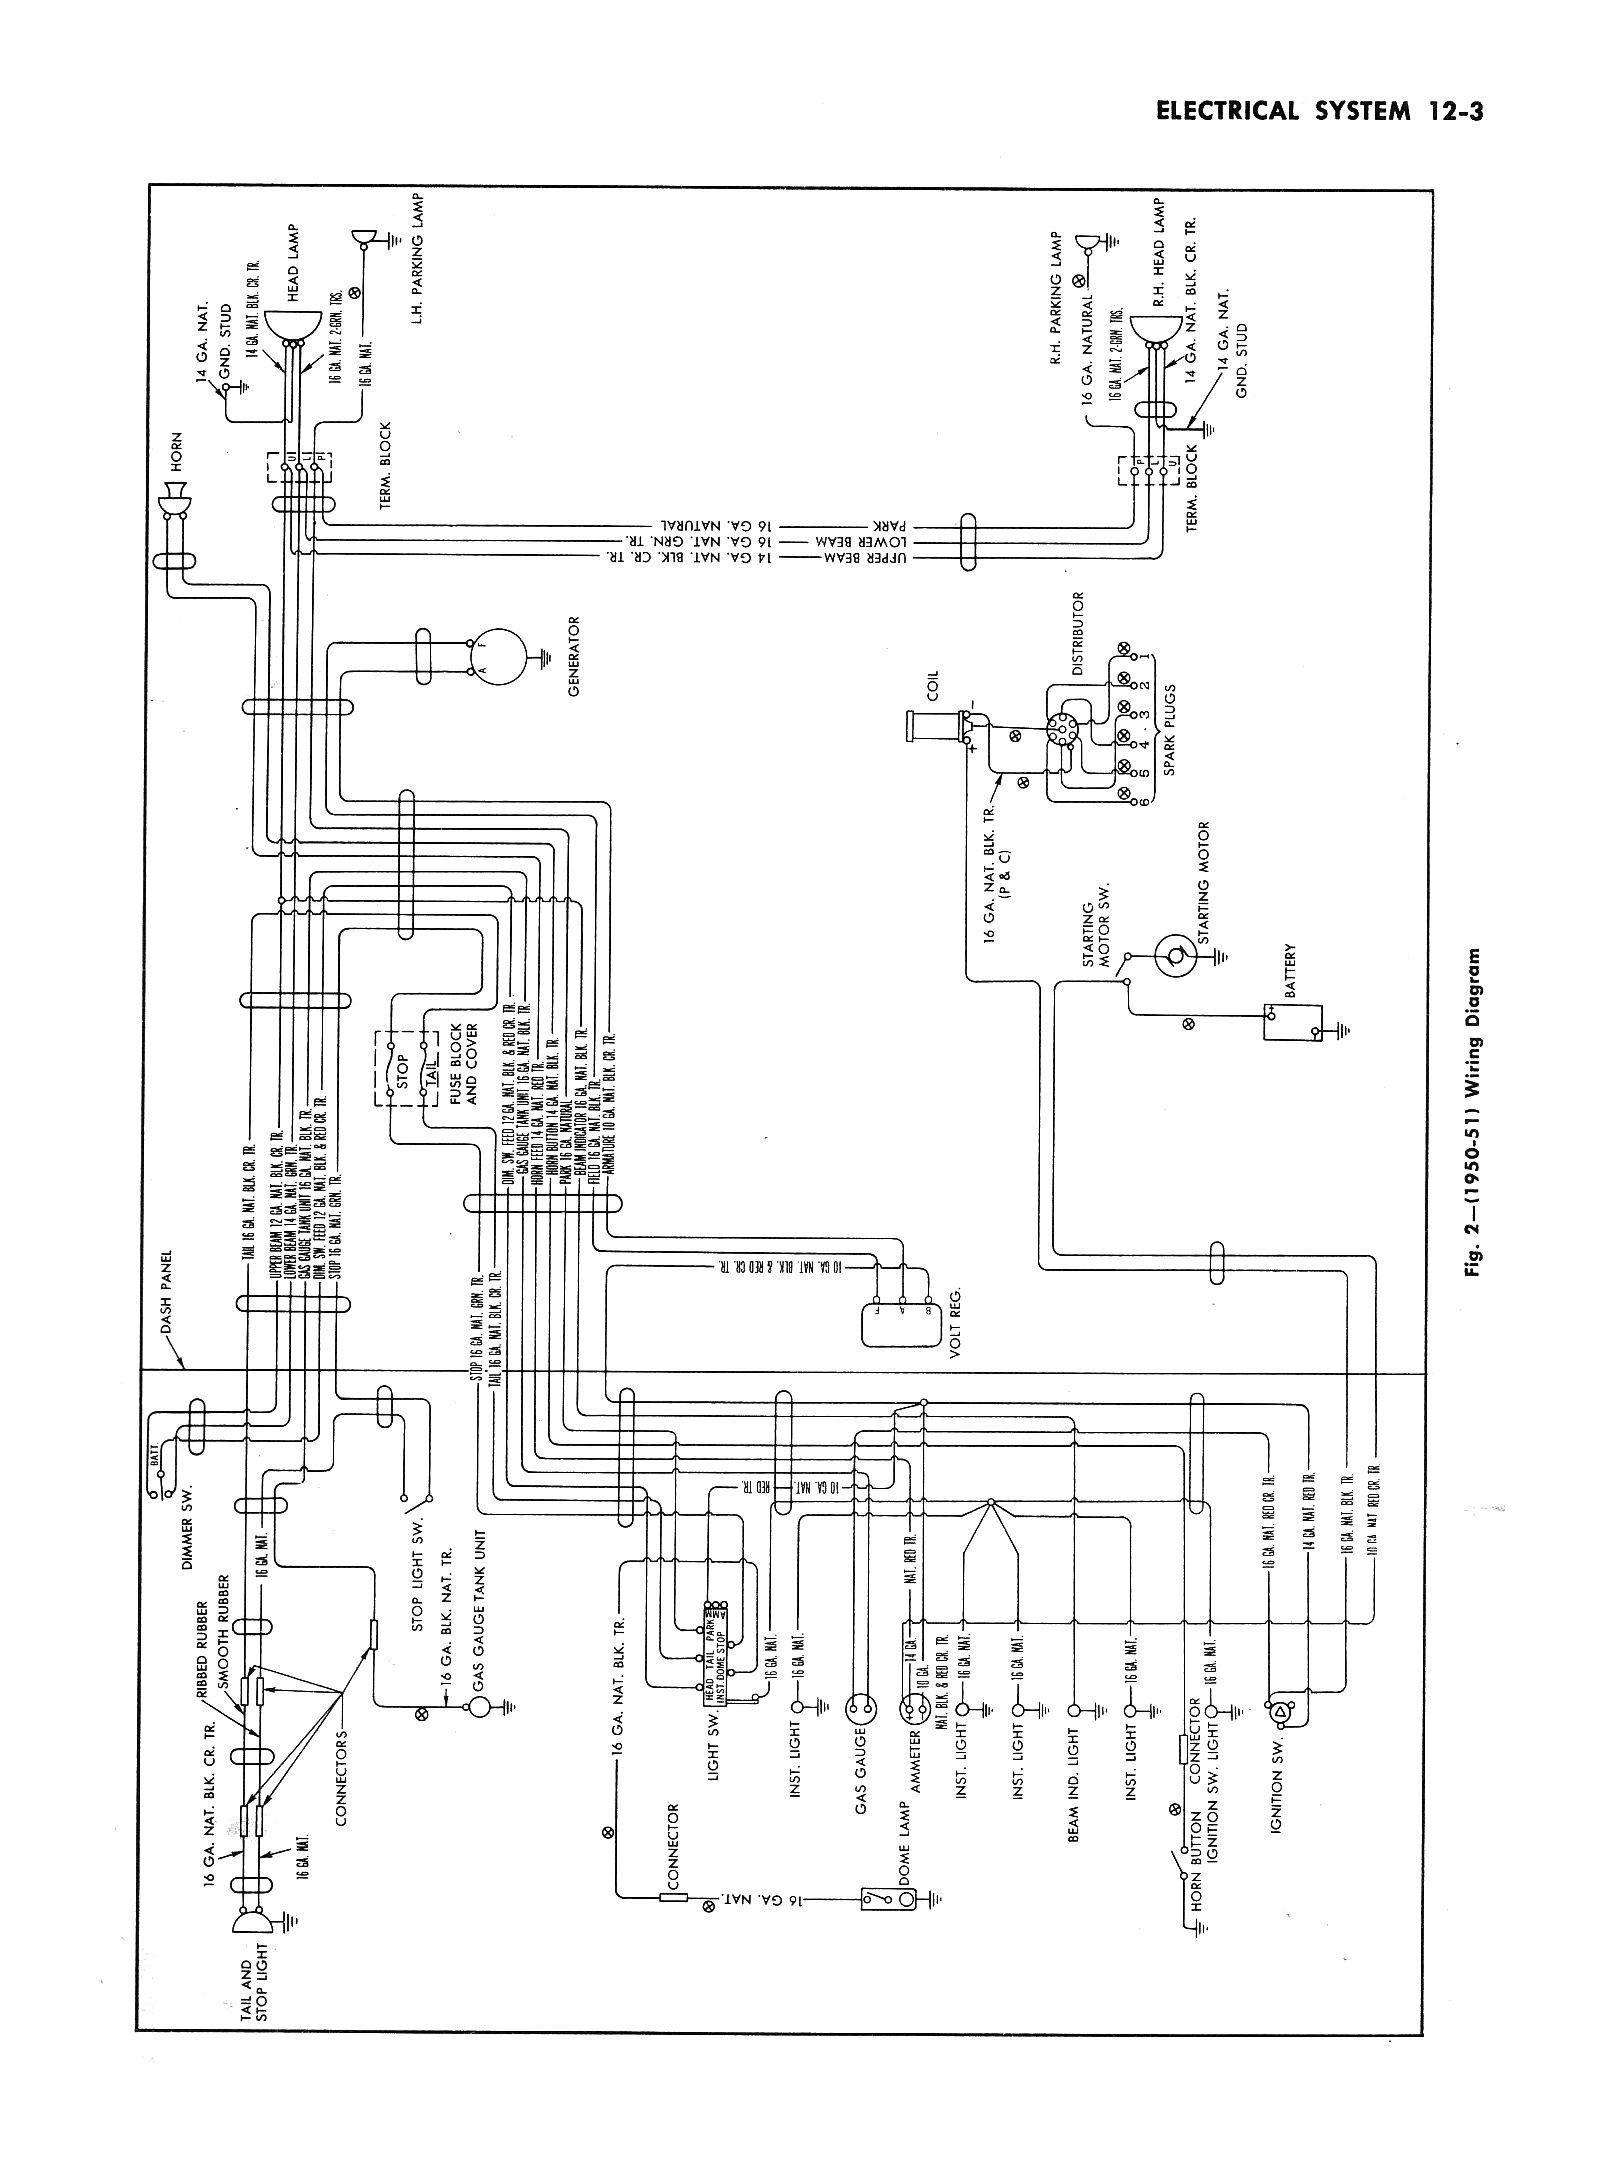 1975 dodge truck wiring diagram  u2022 wiring diagram for free